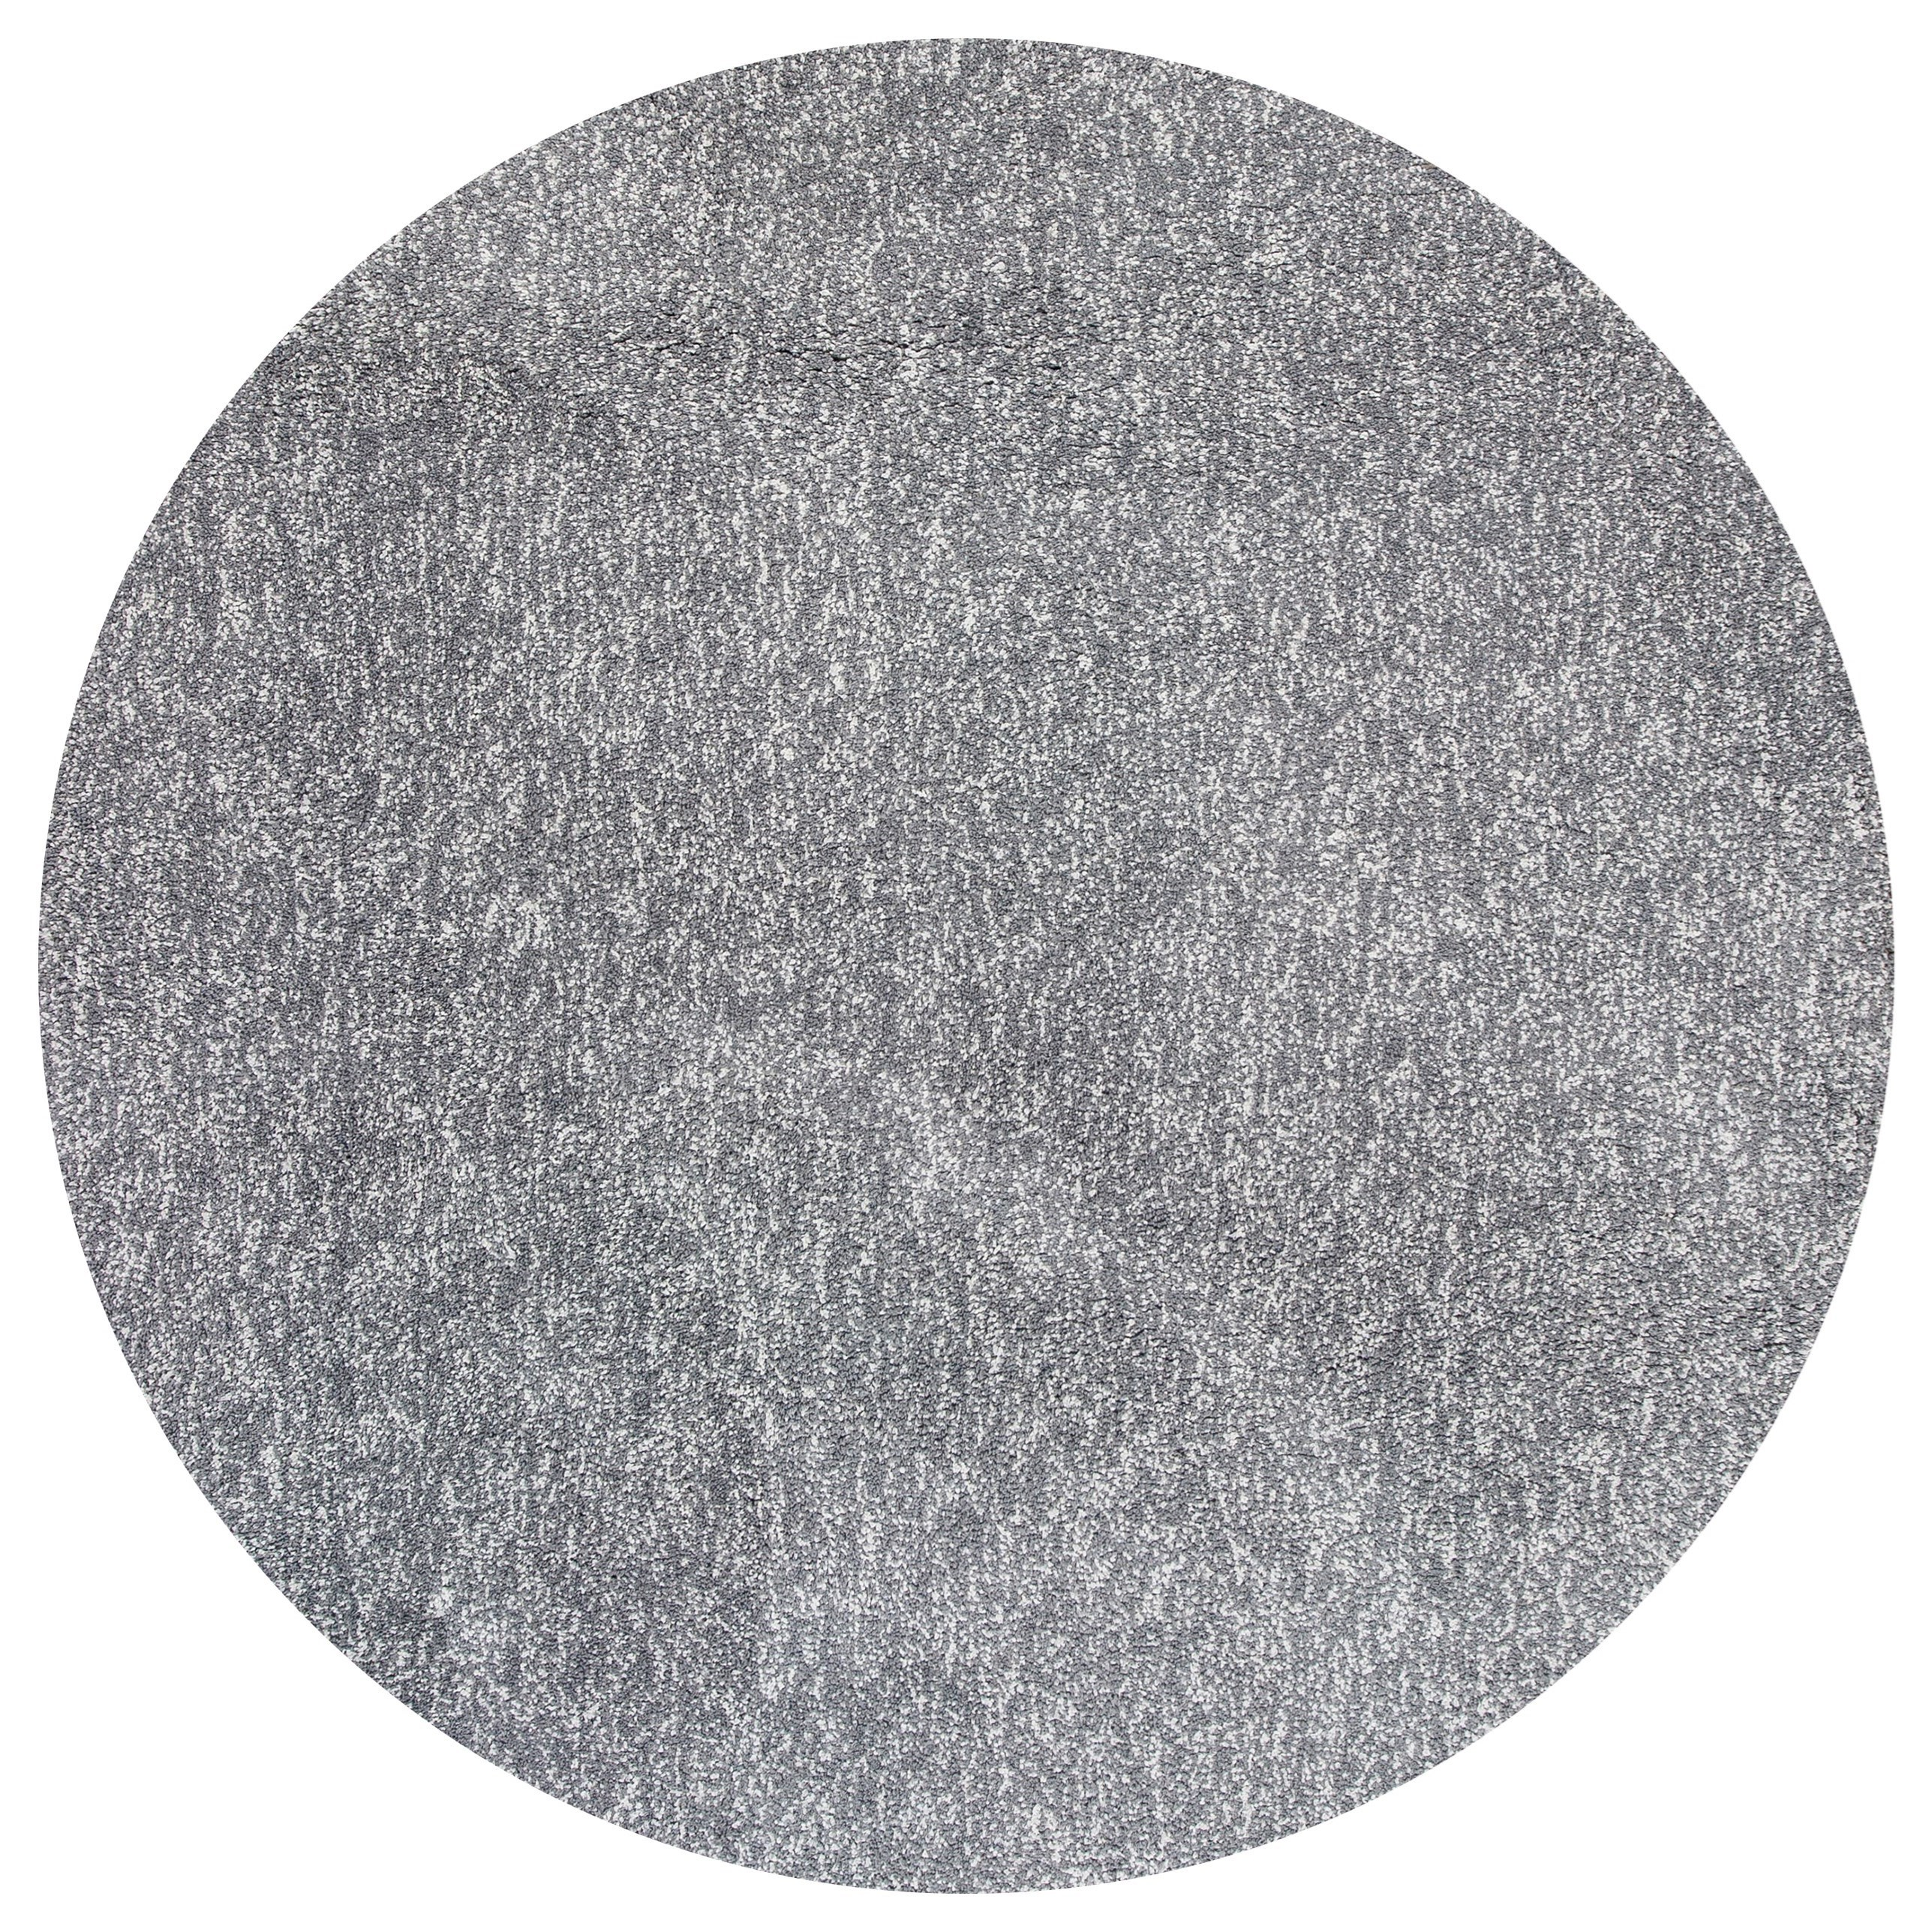 Bliss 8' X 8' Grey Heather Shag Area Rug by Kas at Zak's Home